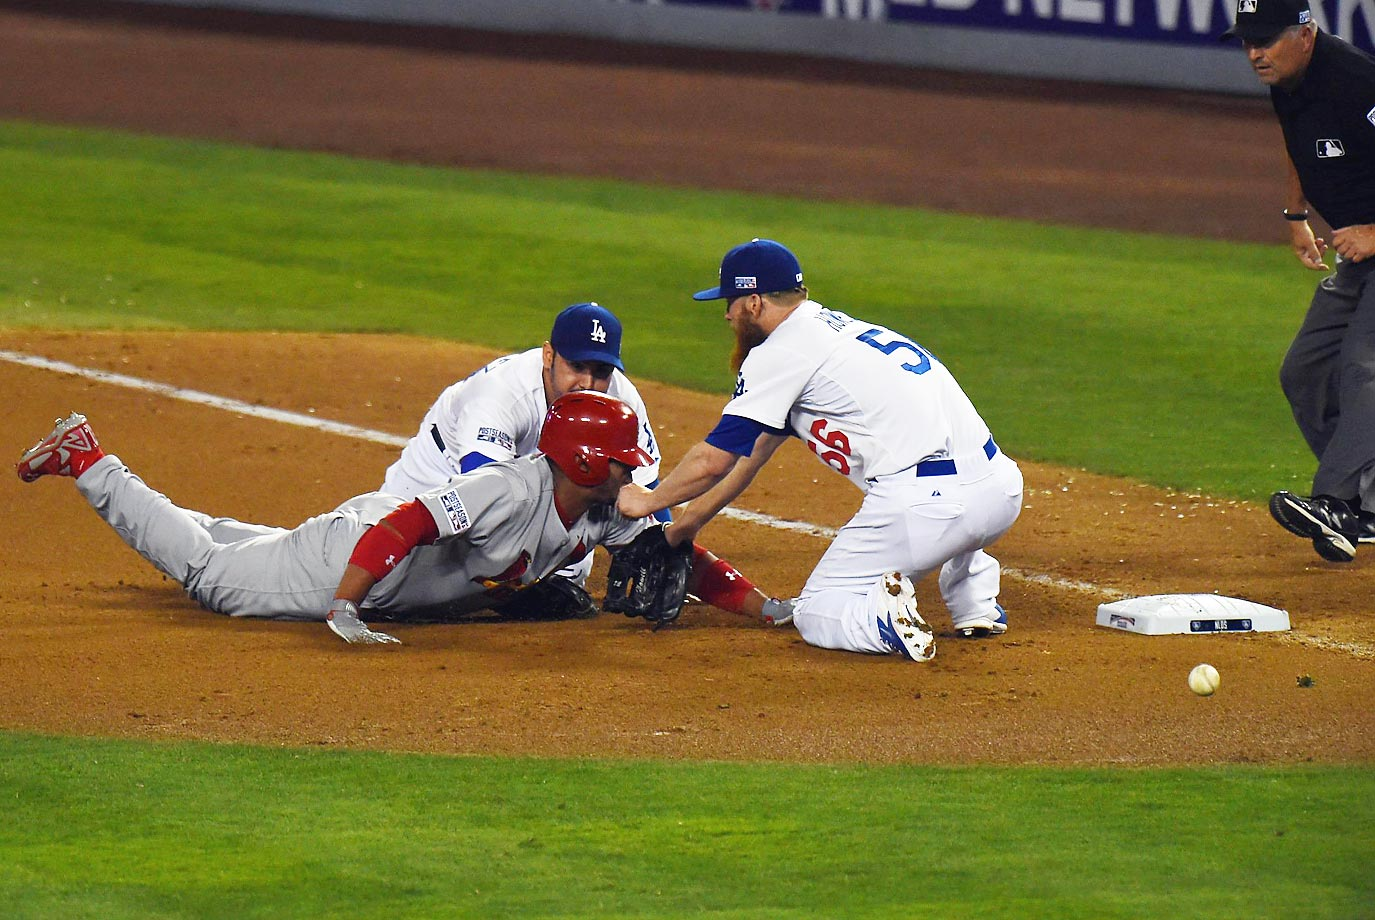 Oscar Taveras of the Cardinals dives back to first as Adrian Gonzalez and J.P. Howell cover.